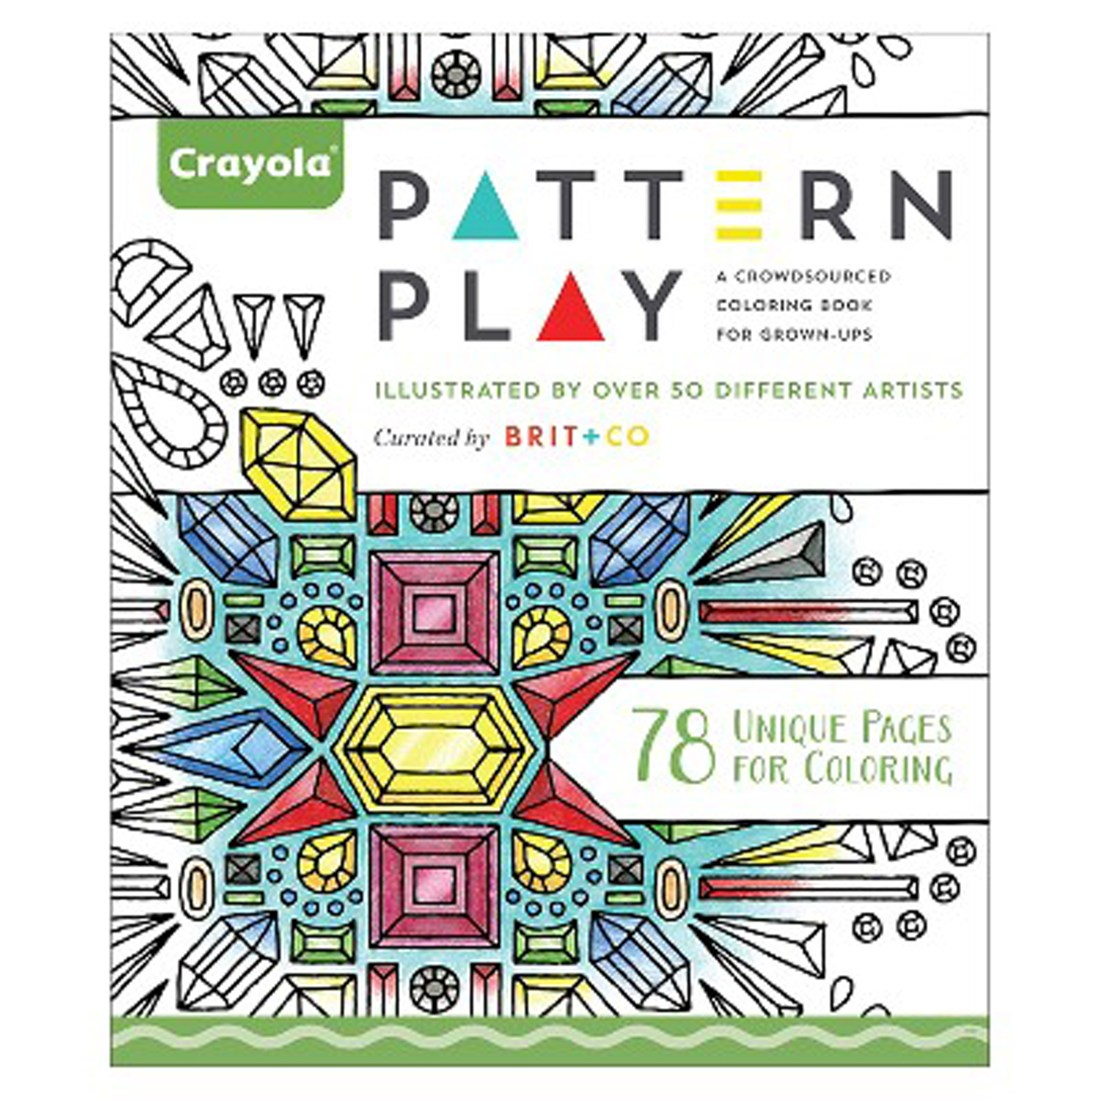 adult coloring books going mainstream (at least some of them)